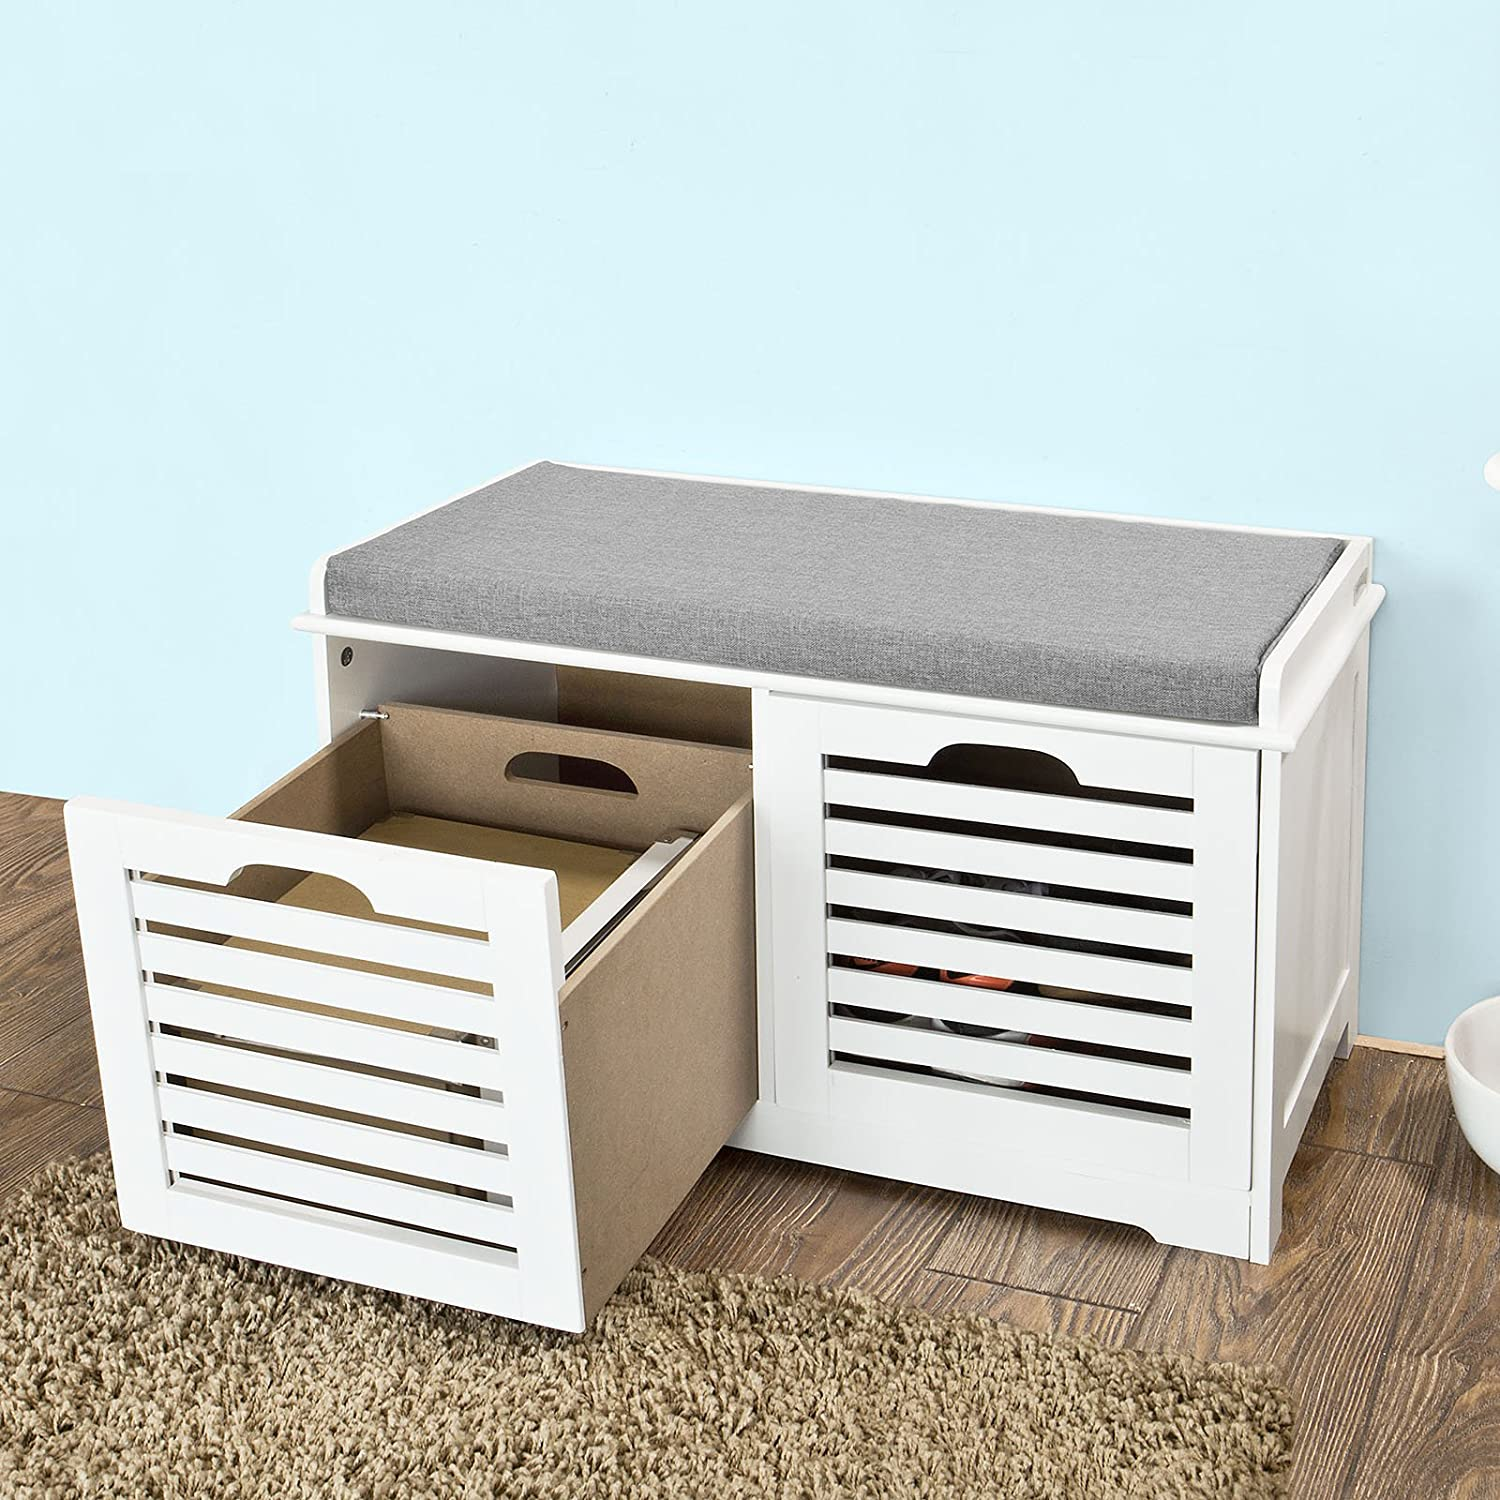 Shoe cabinet shoe bench white storage bench 2 drawers removable seat cushion new Shoe cabinet bench